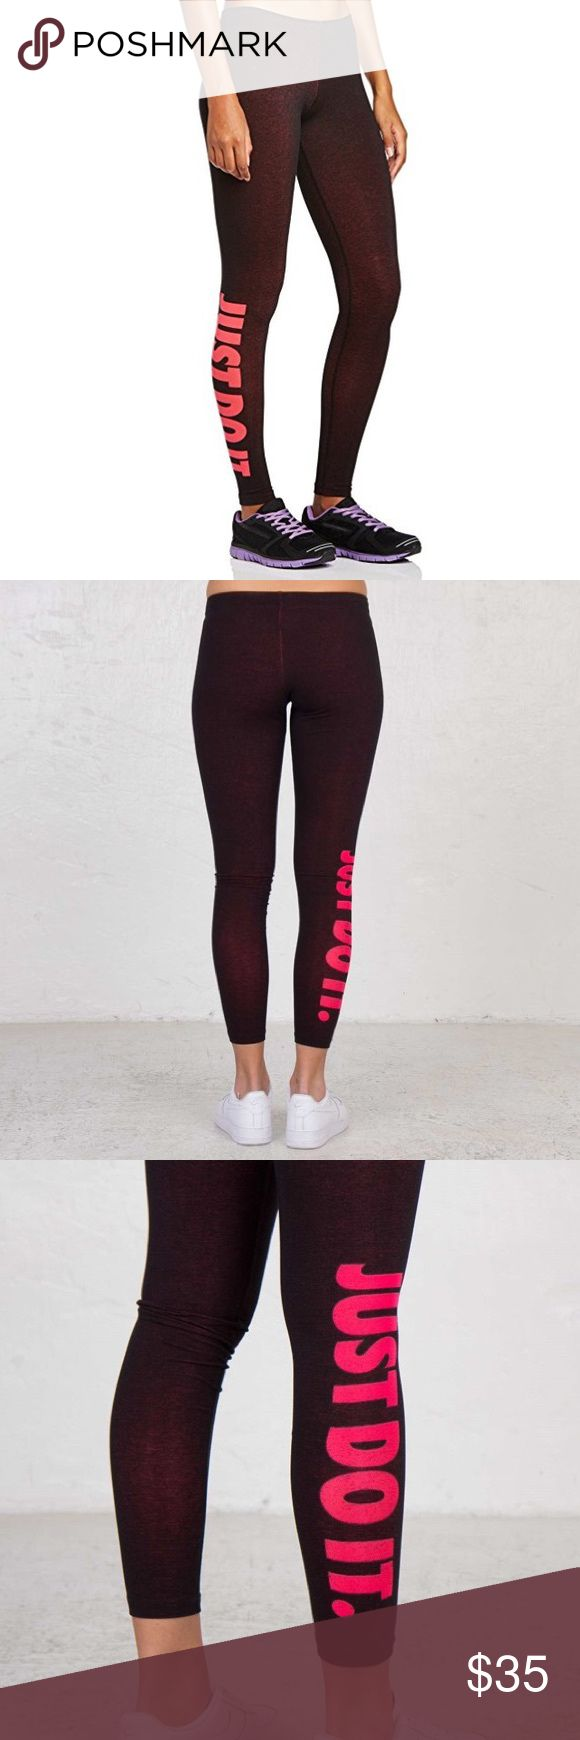 Nike Leg A See Just Do It Leggings M Excellent Nike tights in amazing condition. Black with an undertone of pink. As you wear them and they stretch more pink color comes through as in the photos. Happy Poshing Ladies! 💁🏾✨  📫 Same/Next Day Shipping 🐩 Pet Free 🚫 Trades Nike Pants Leggings